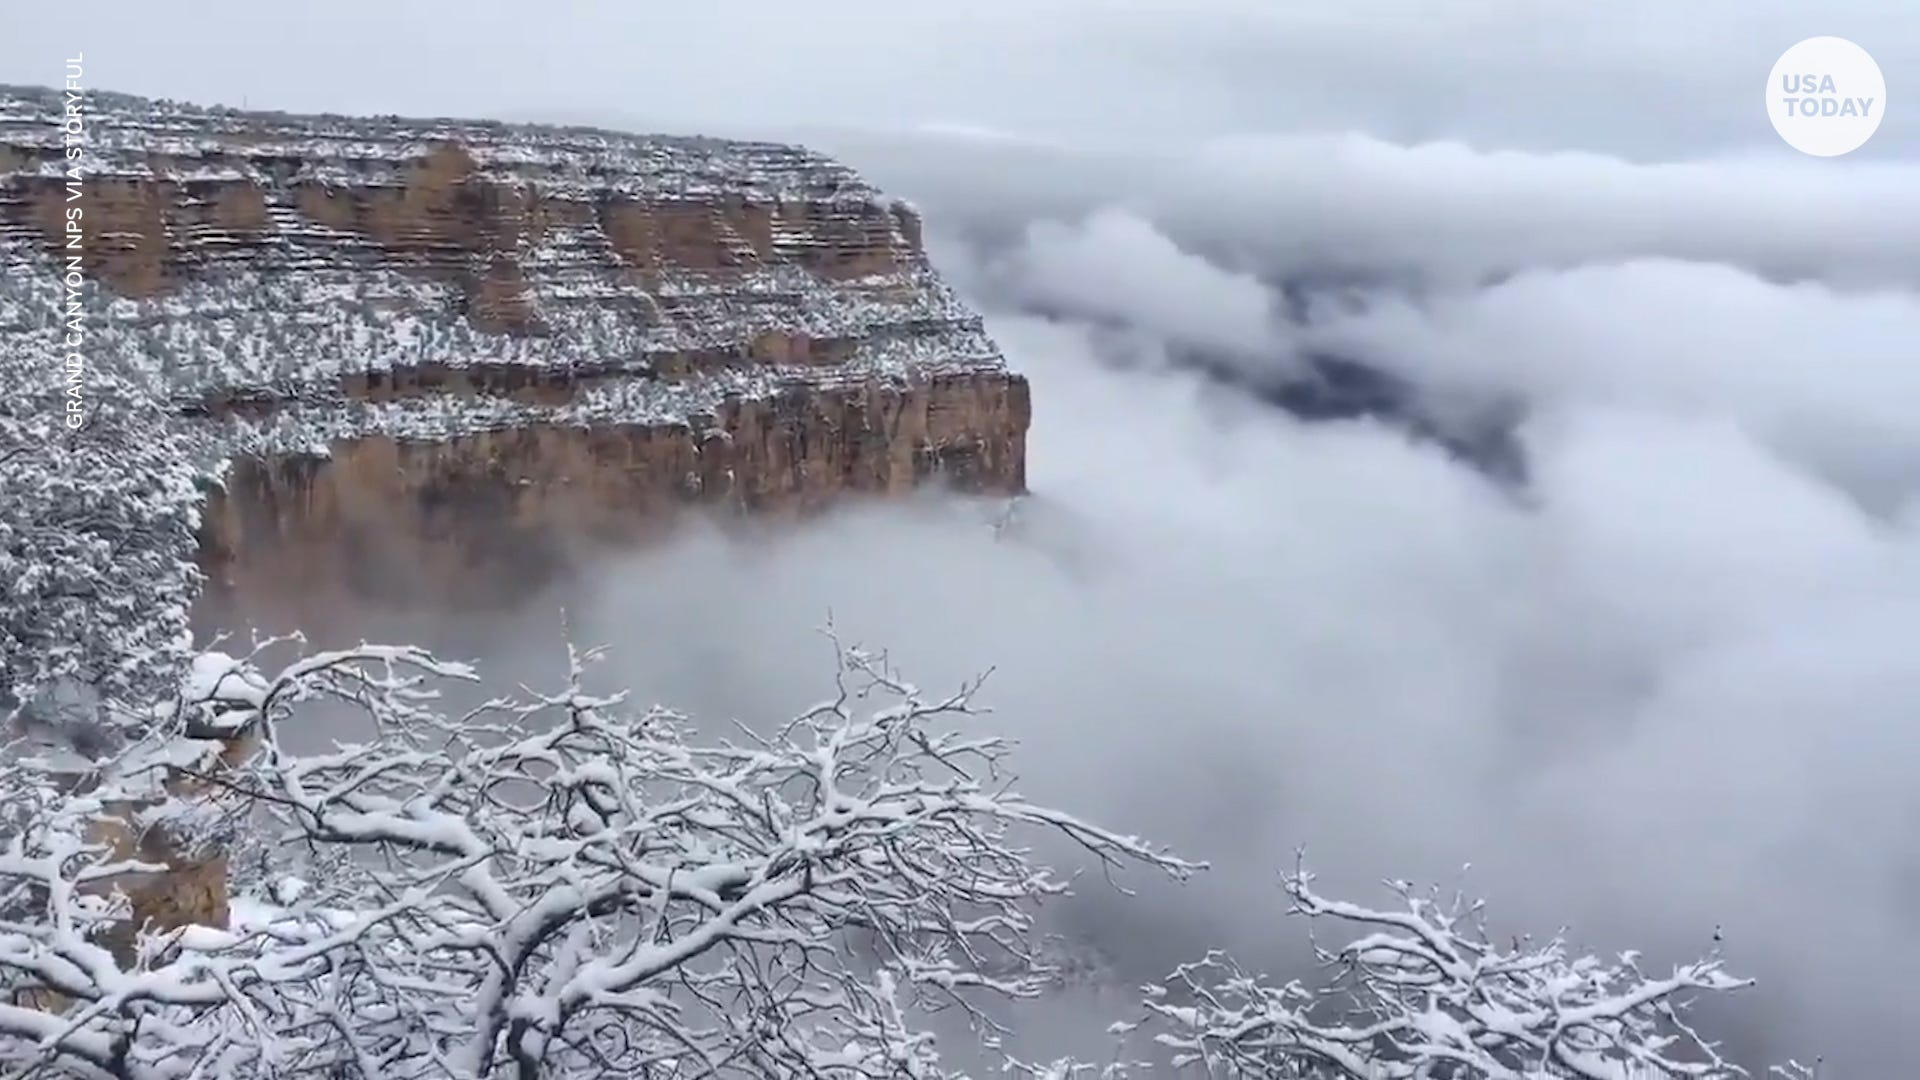 Have you ever seen the Grand Canyon hidden by low clouds?